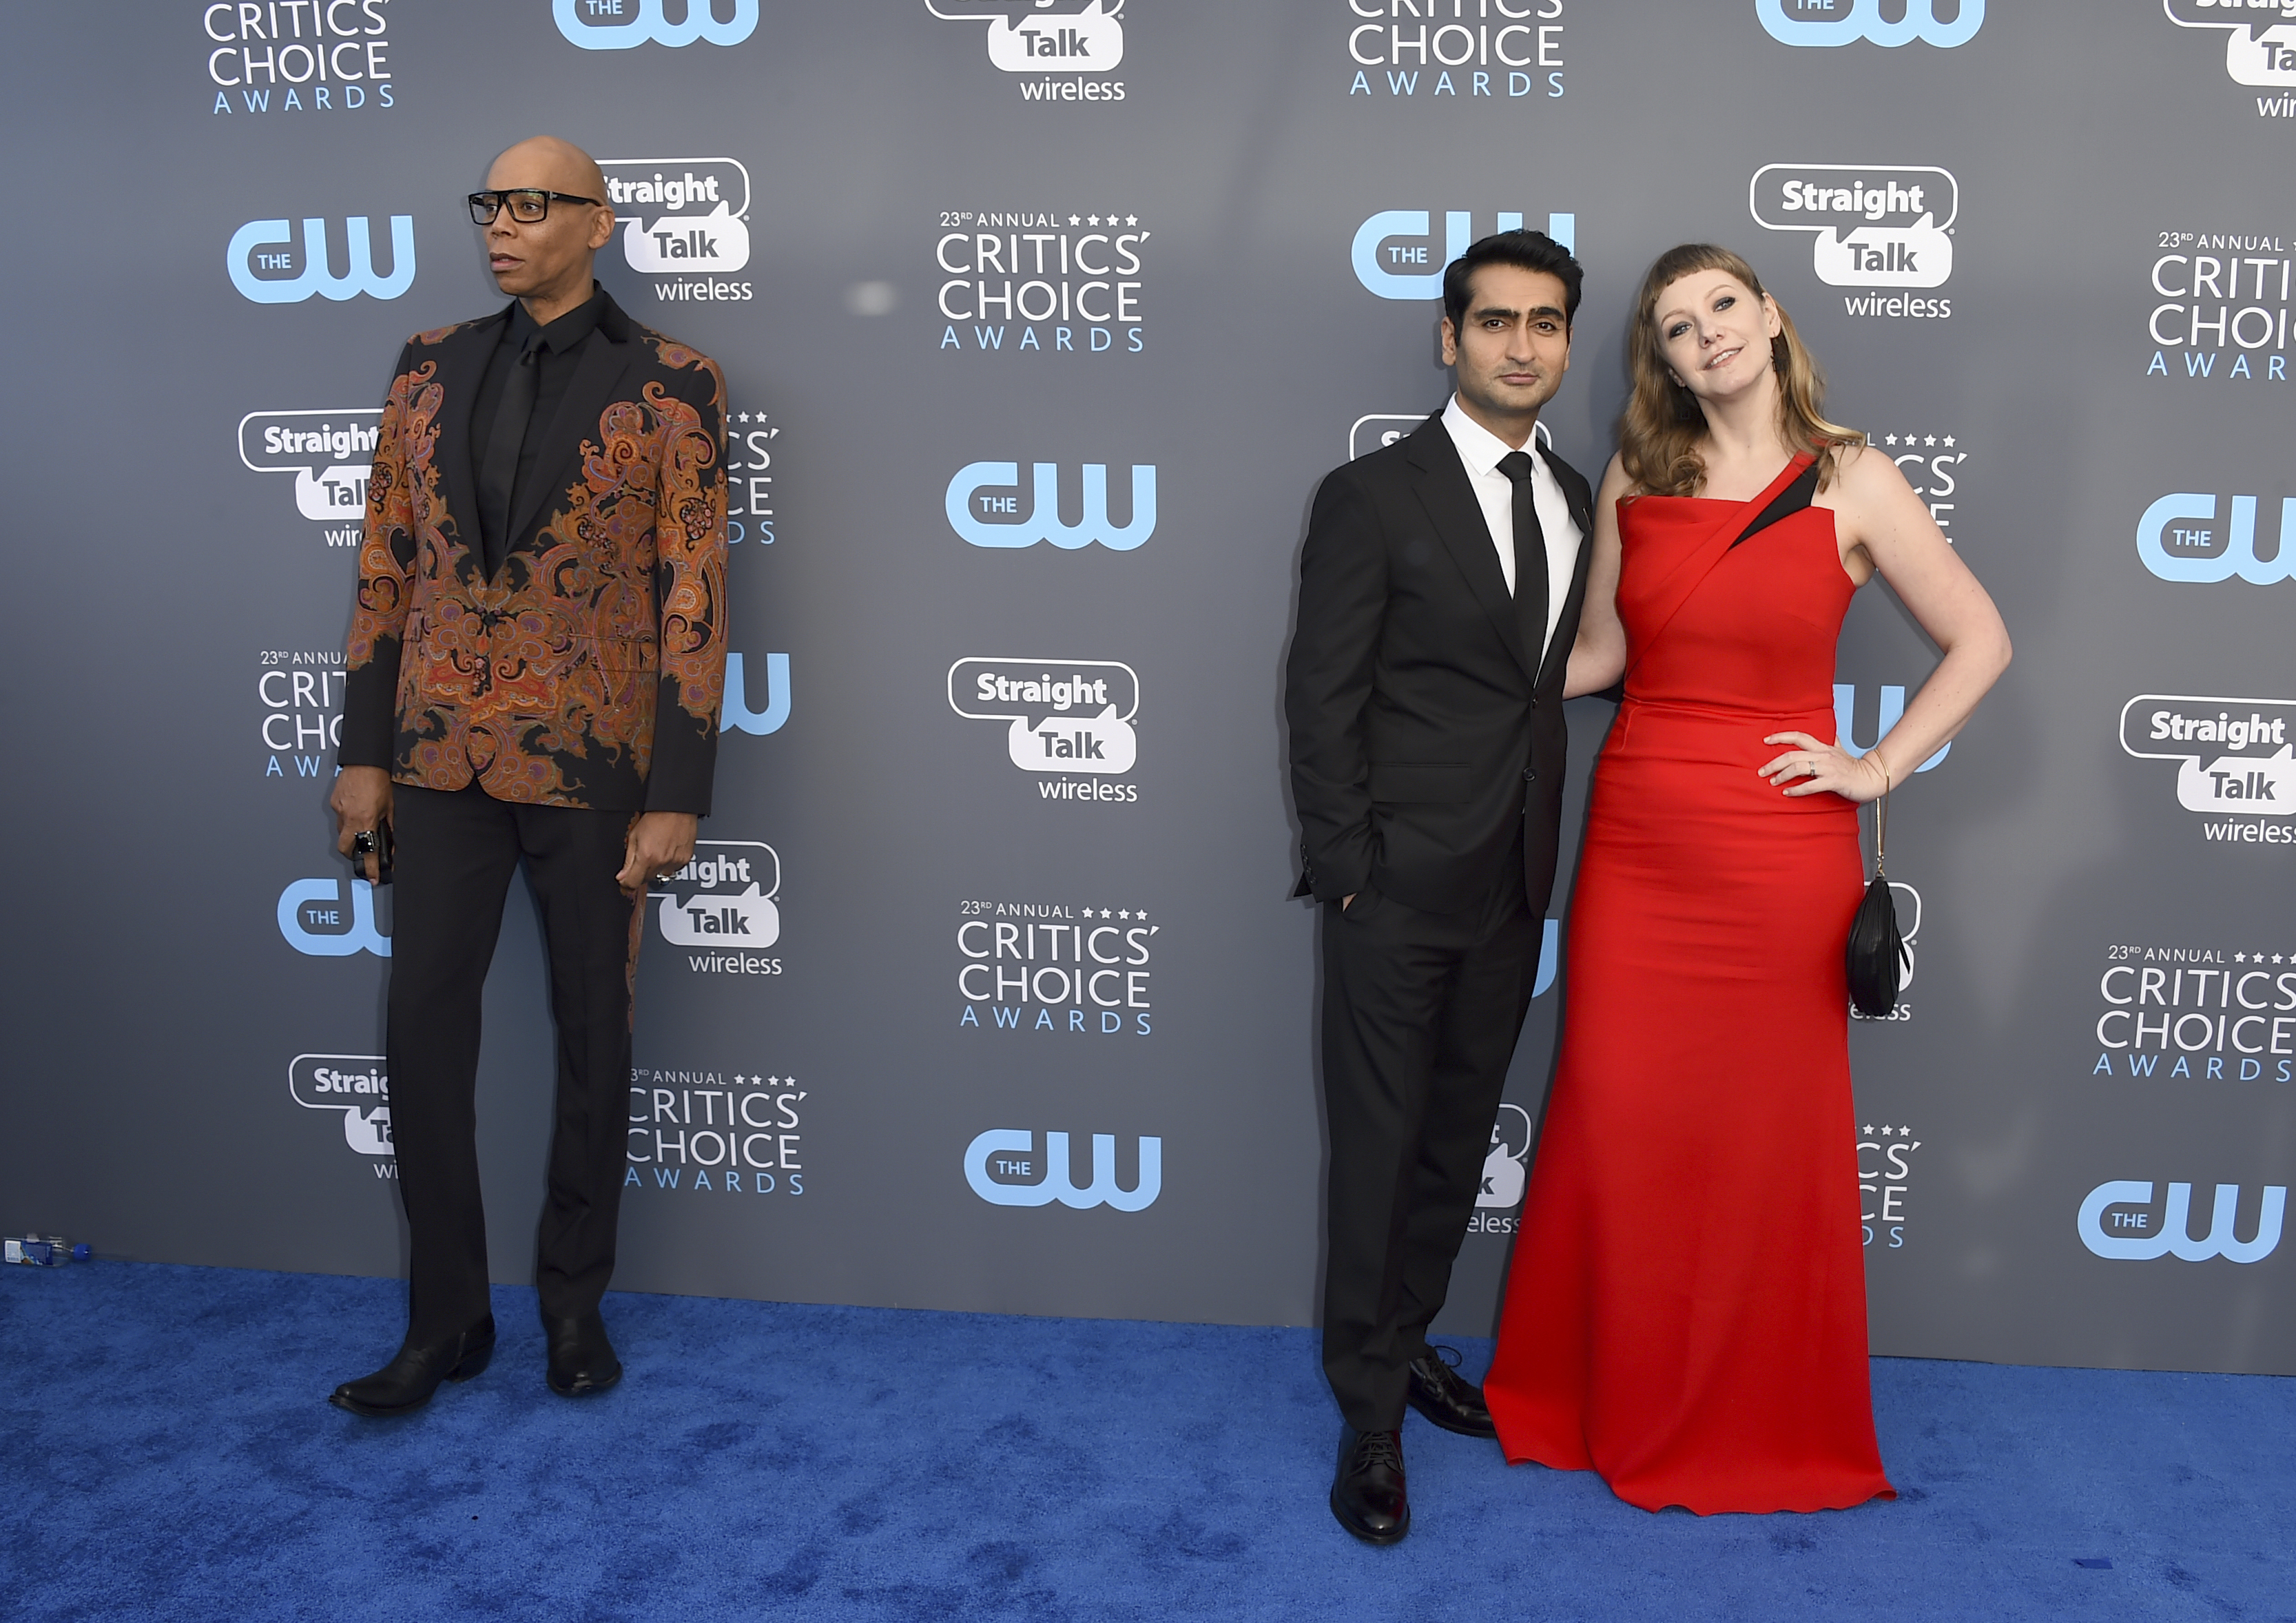 <div class='meta'><div class='origin-logo' data-origin='AP'></div><span class='caption-text' data-credit='Jordan Strauss/Invision/AP'>RuPaul, from left, Kumail Nanjiani, and Emily V. Gordon arrive at the 23rd annual Critics' Choice Awards at the Barker Hangar on Thursday, Jan. 11, 2018, in Santa Monica, Calif.</span></div>